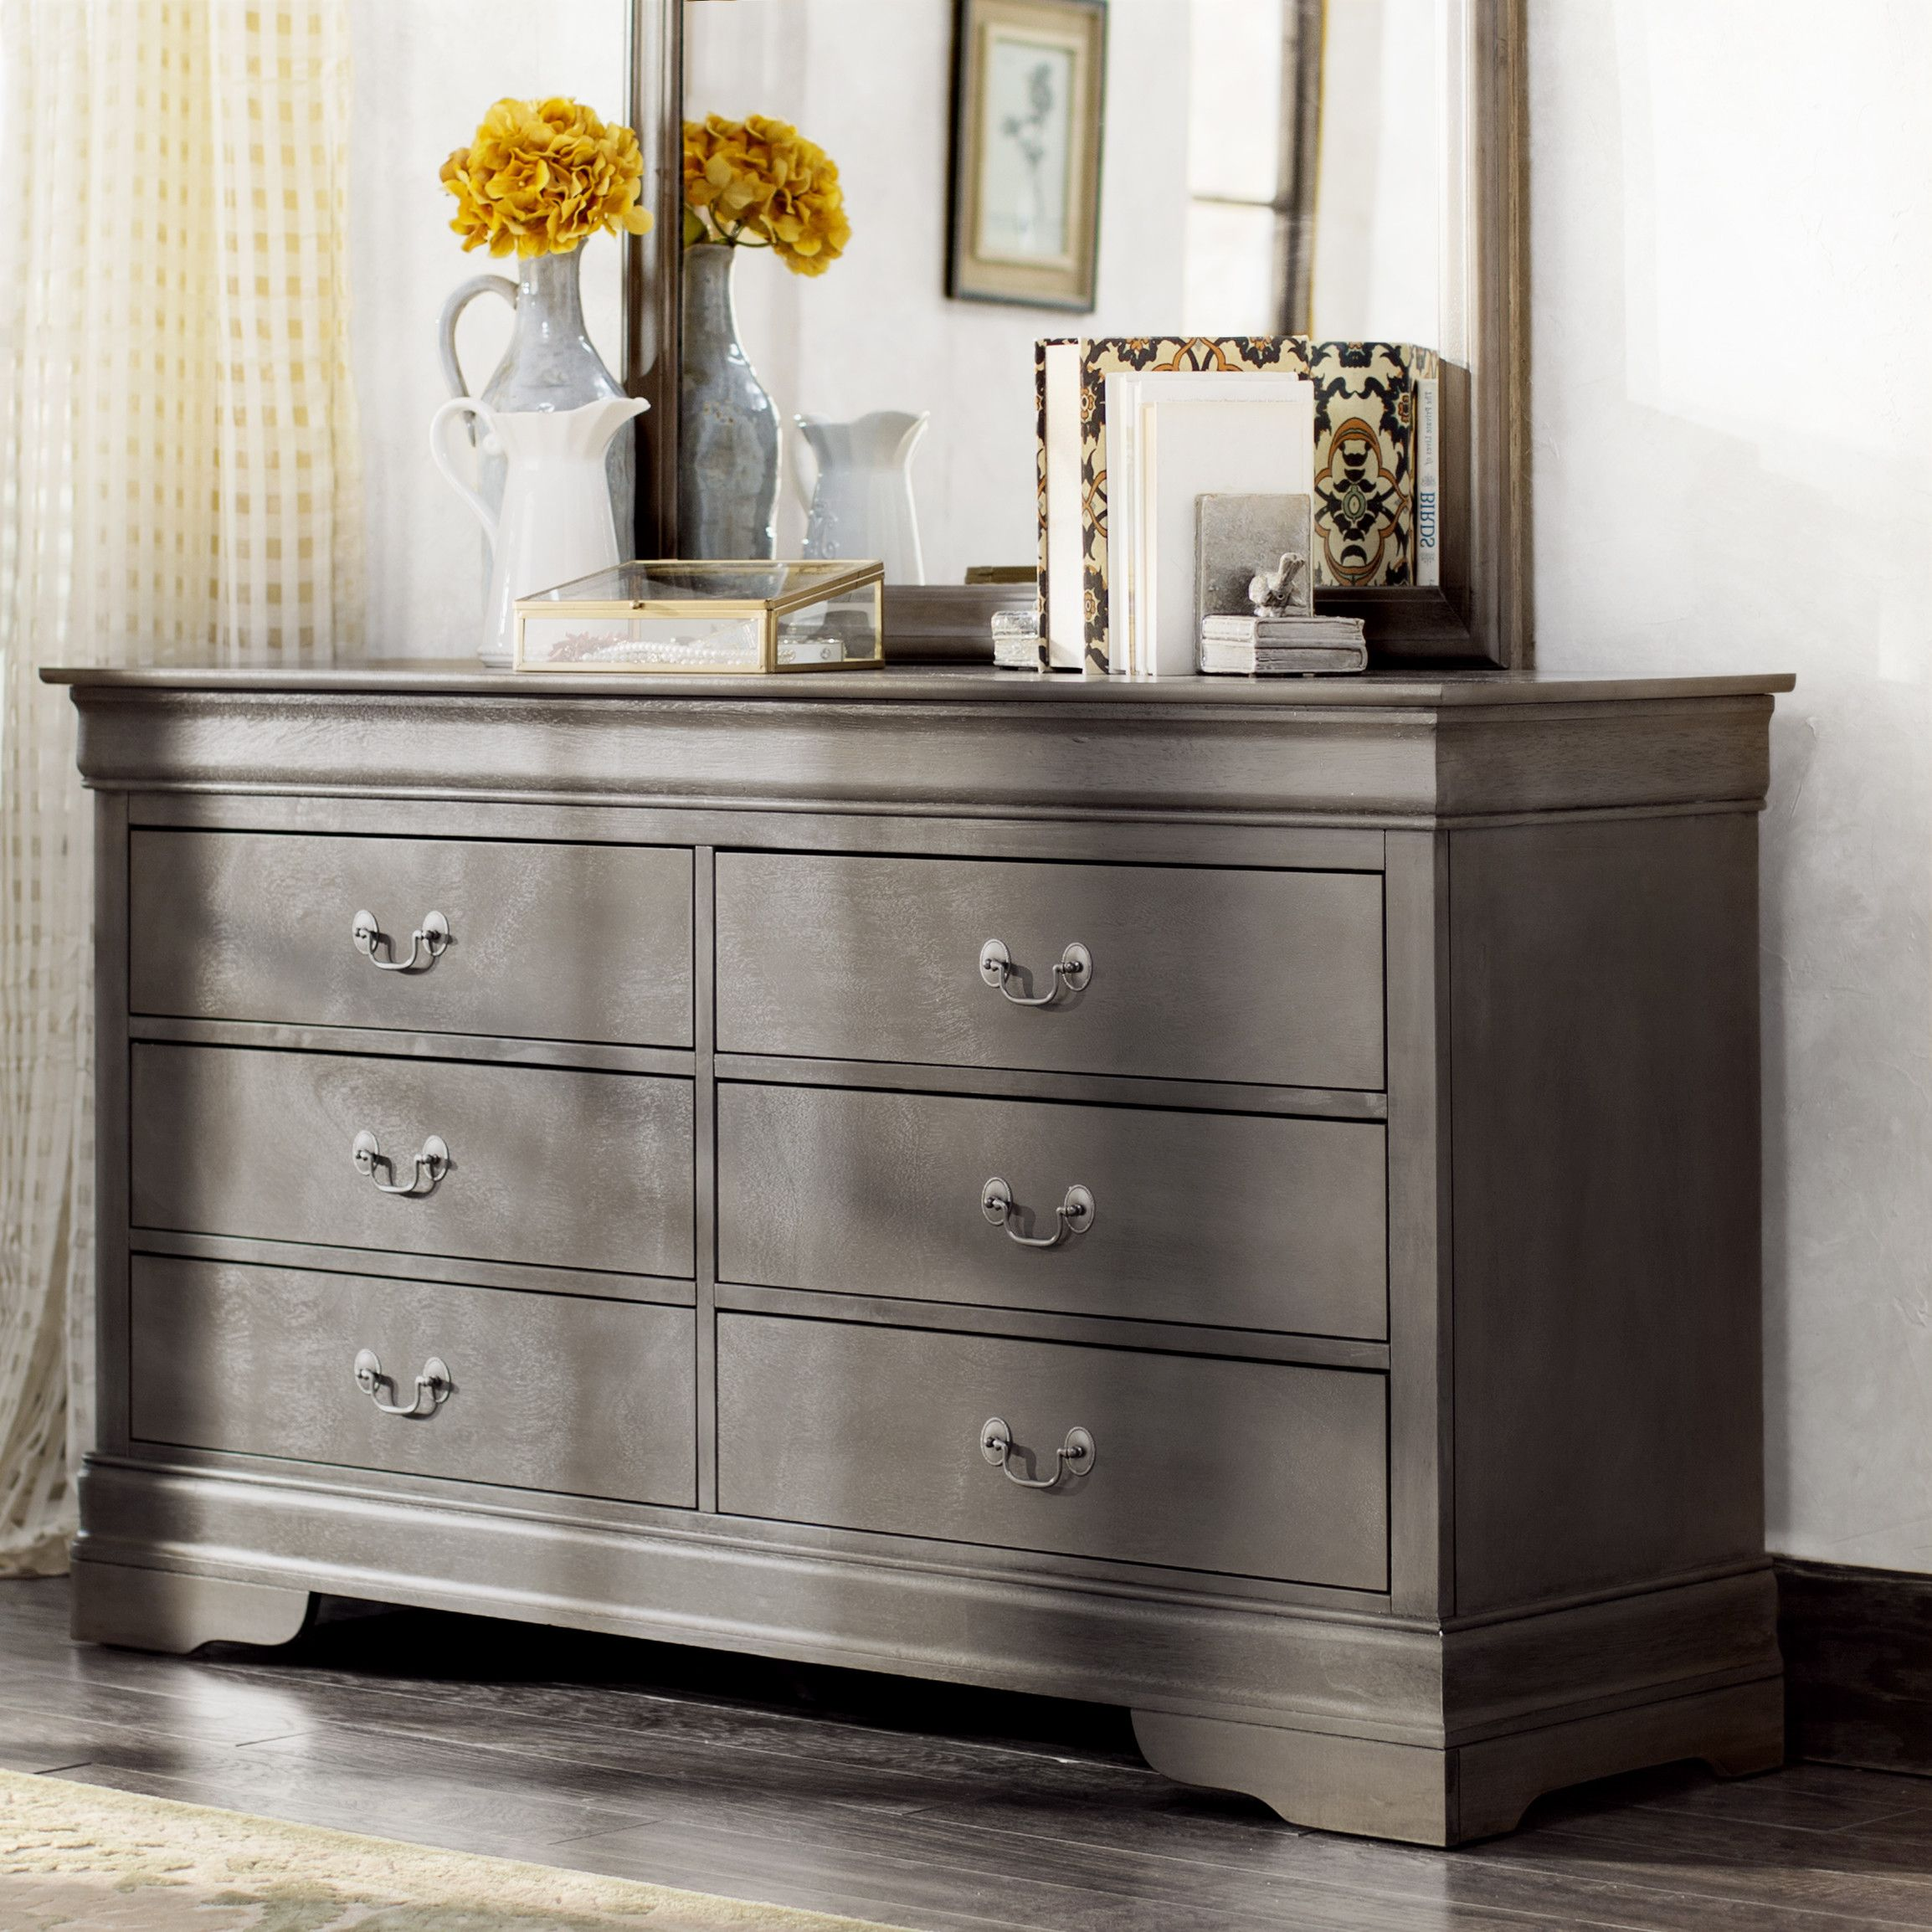 Shop Wayfair For Dressers To Match Every Style And Budget Enjoy Free Shipping Furniture Bedroom Furniture Dresser Dresser Drawers